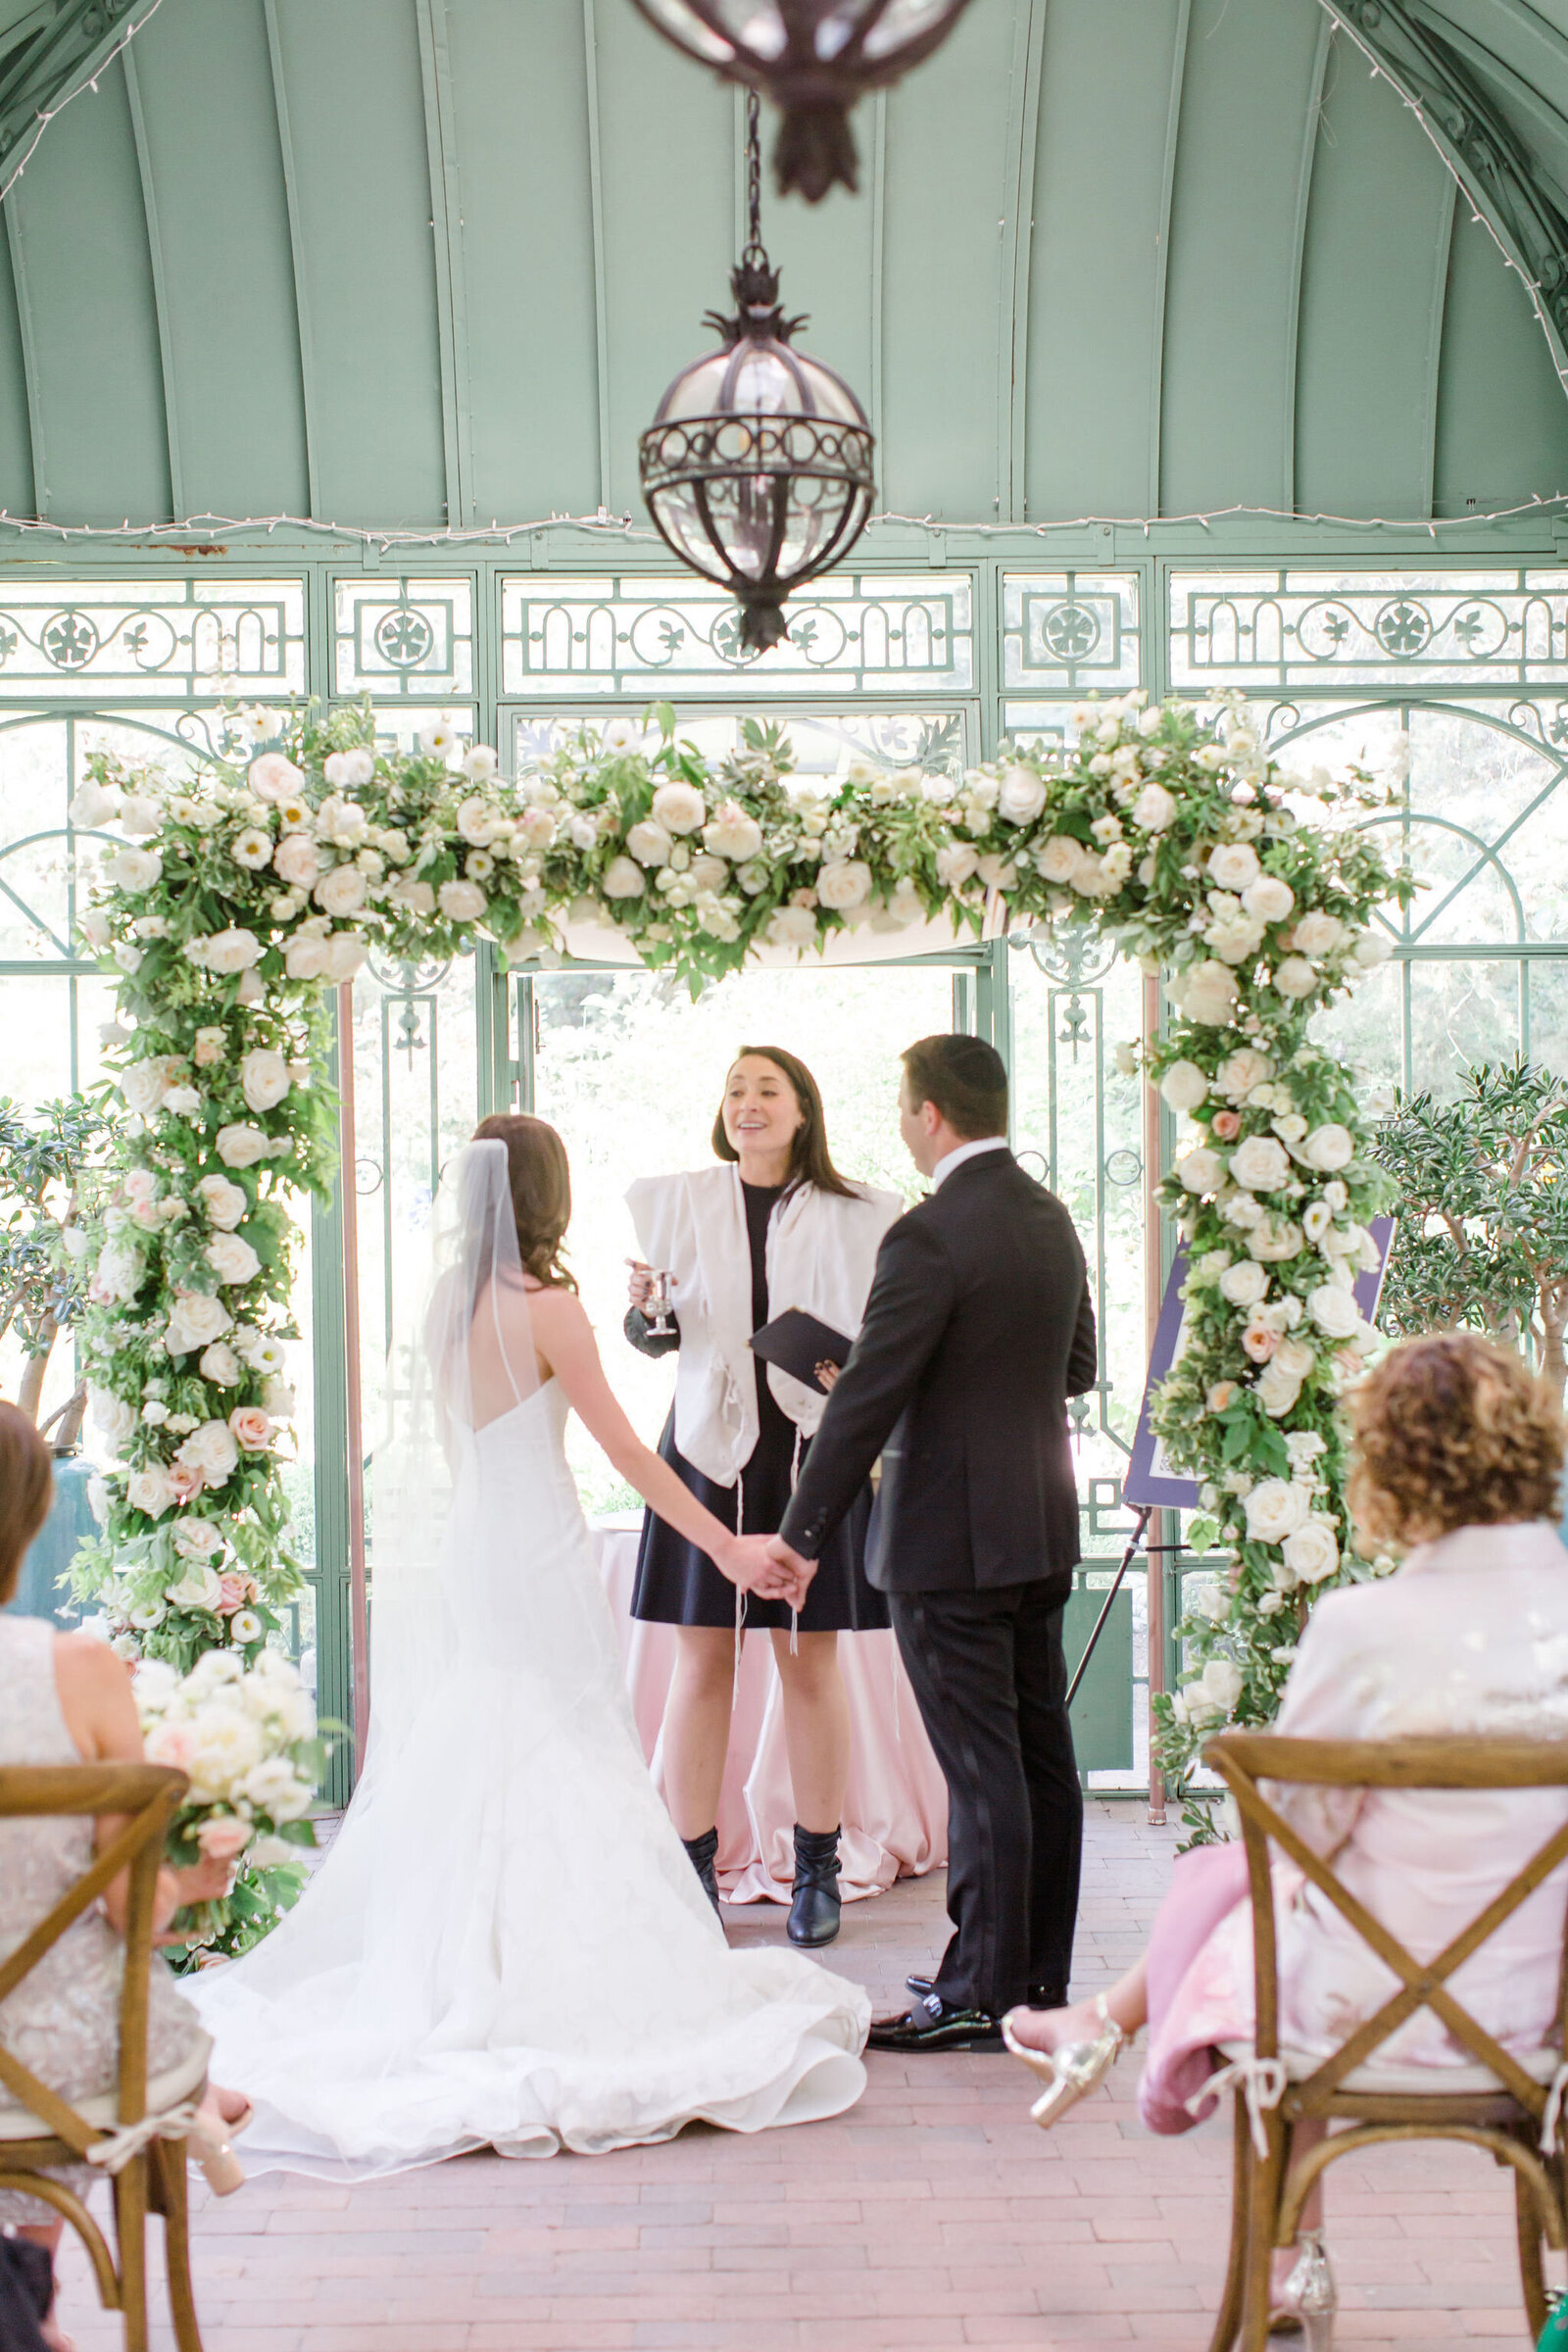 white and blush flowers on chuppah, michele with one l, jewish wedding, denver botanic gardens wedding, woodland mosaic ceremony, microwedding flowers